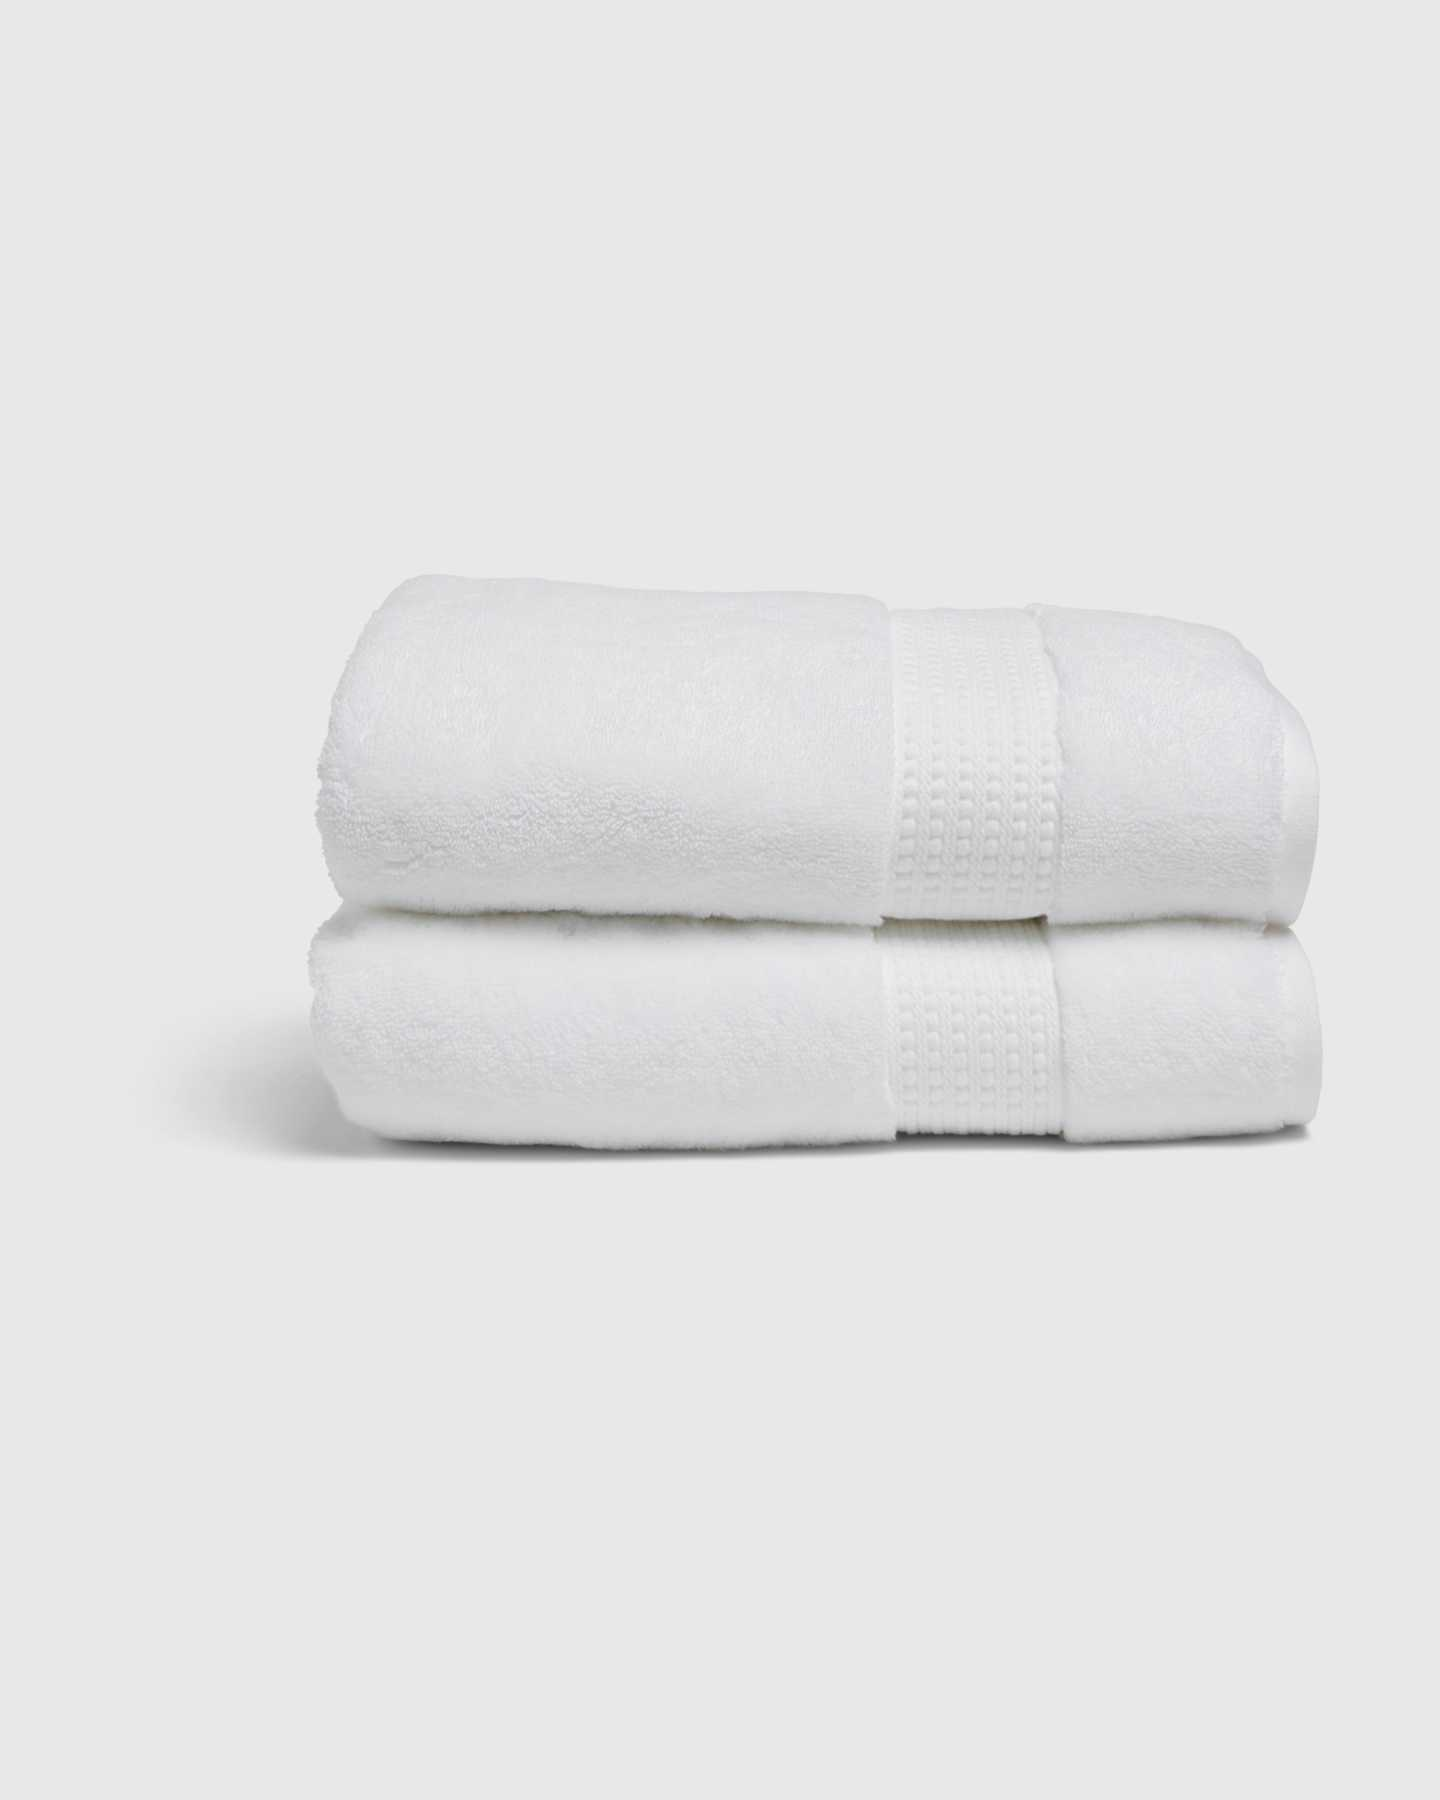 Turkish Quick-Dry Bath Towels (Set of 2) - White - 0 - Thumbnail